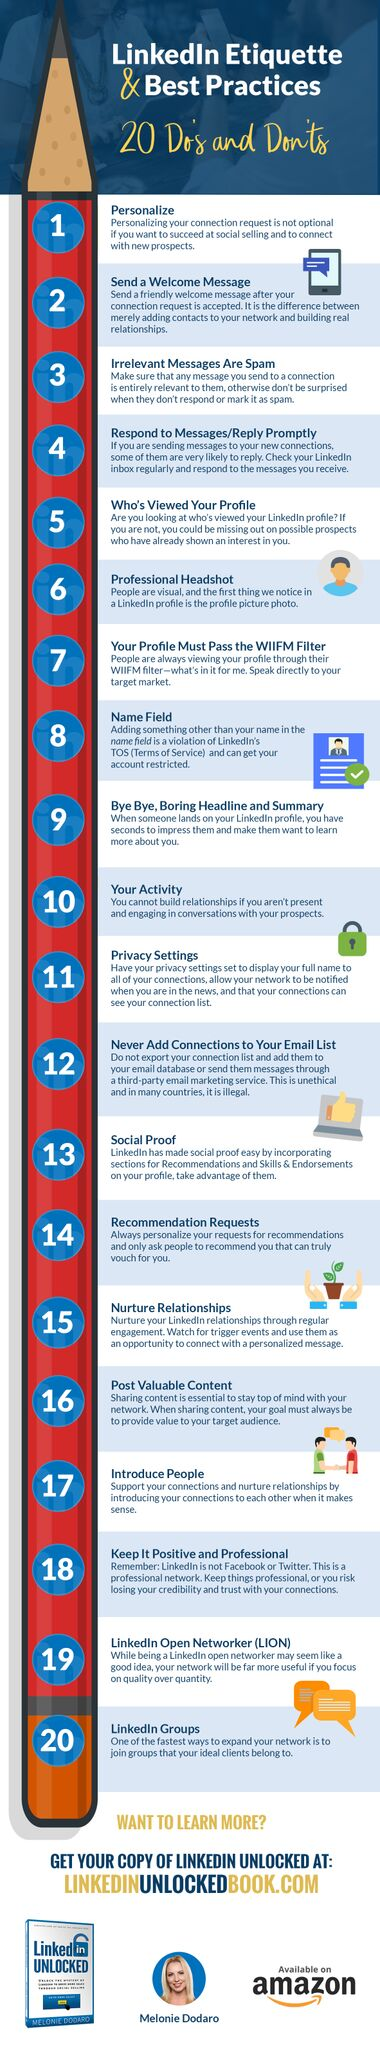 LinkedIn Etiquette & Best Practices – 20 Do's and Dont's [Infographic]